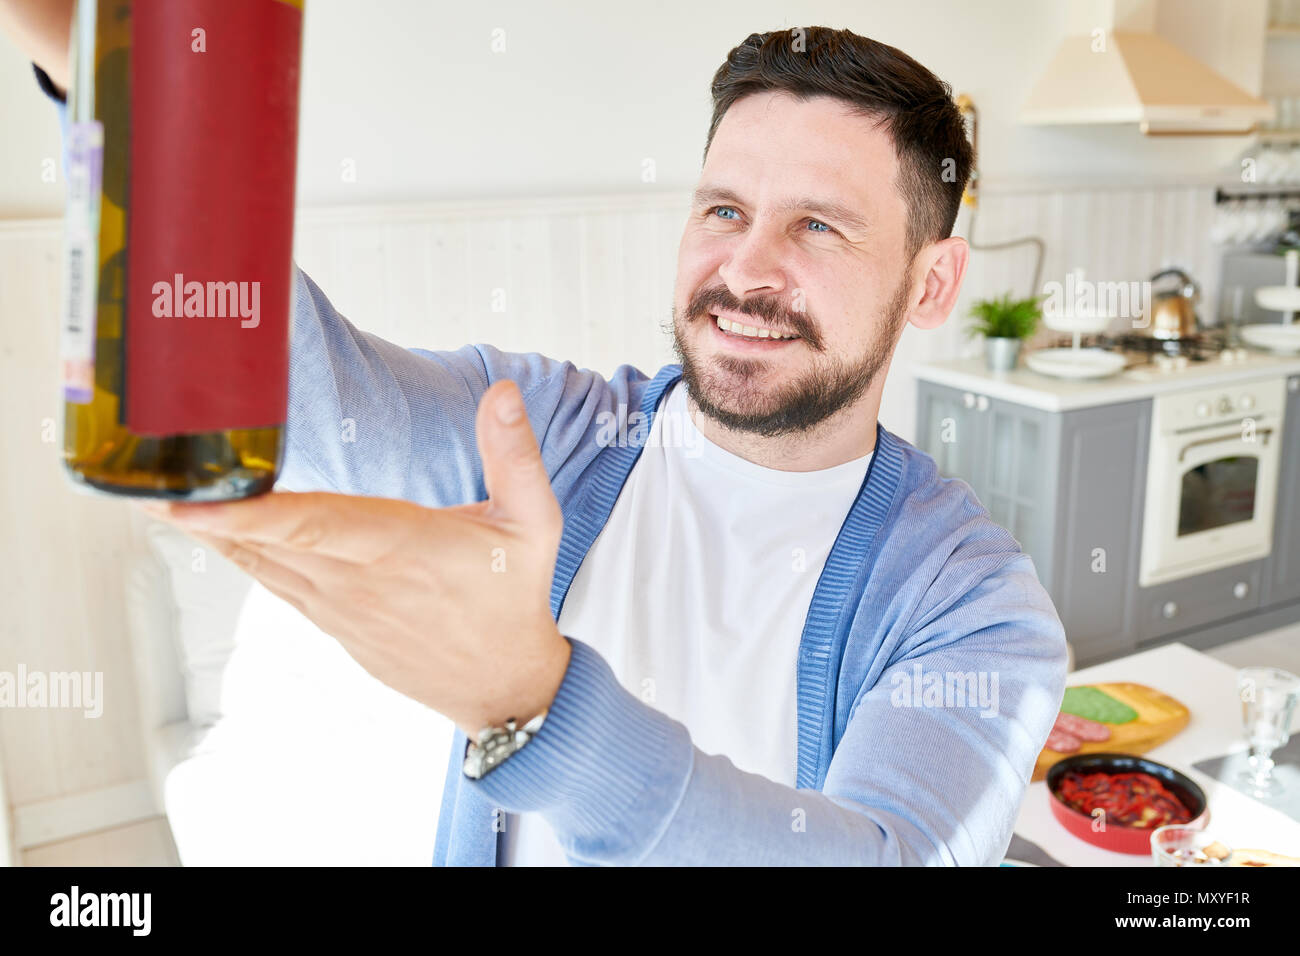 Portrait of smiling bearded man holding wine bottle, inspecting color and quality while setting dinner table  waiting for guests in sunlit dining room - Stock Image